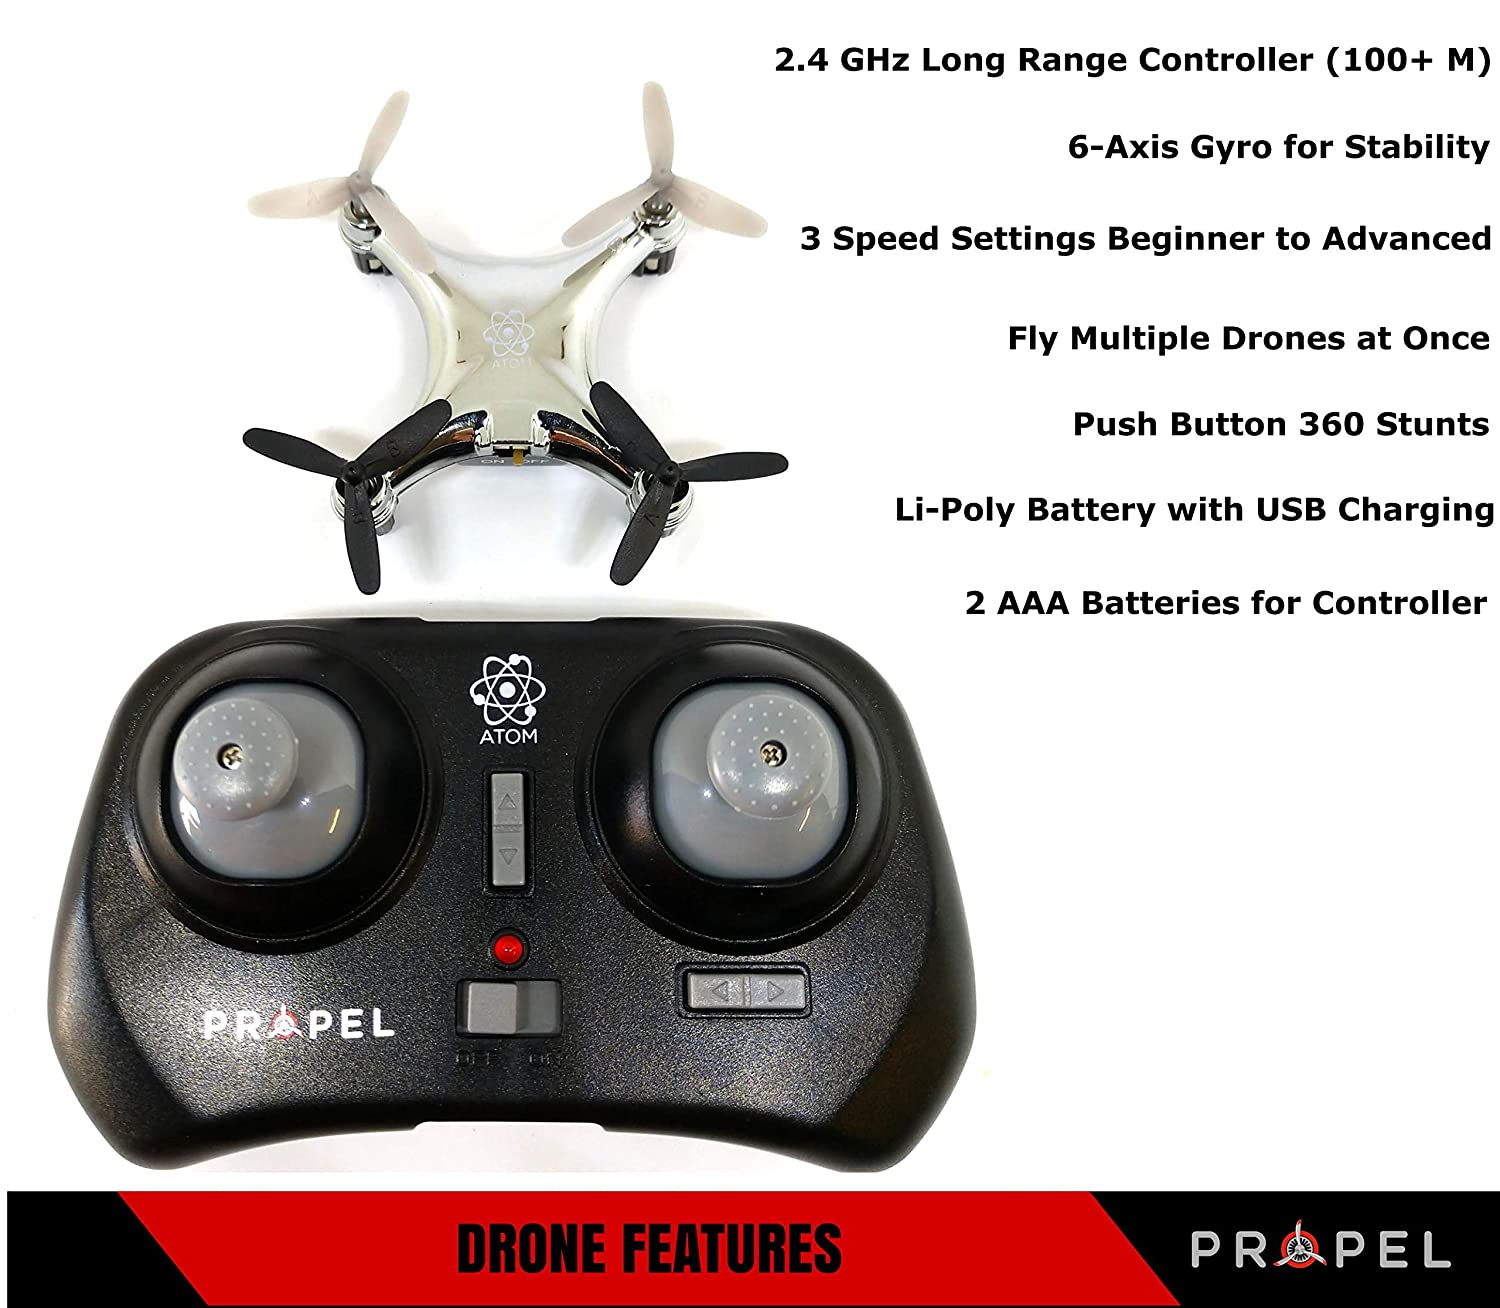 Propel Atom 1.0 Mini Pocket Drone | Small Remote Control RC Micro Quadcopter | Long-Range (100+M) Nano Toy Helicopter| Beginner to Advanced Pilots | ...